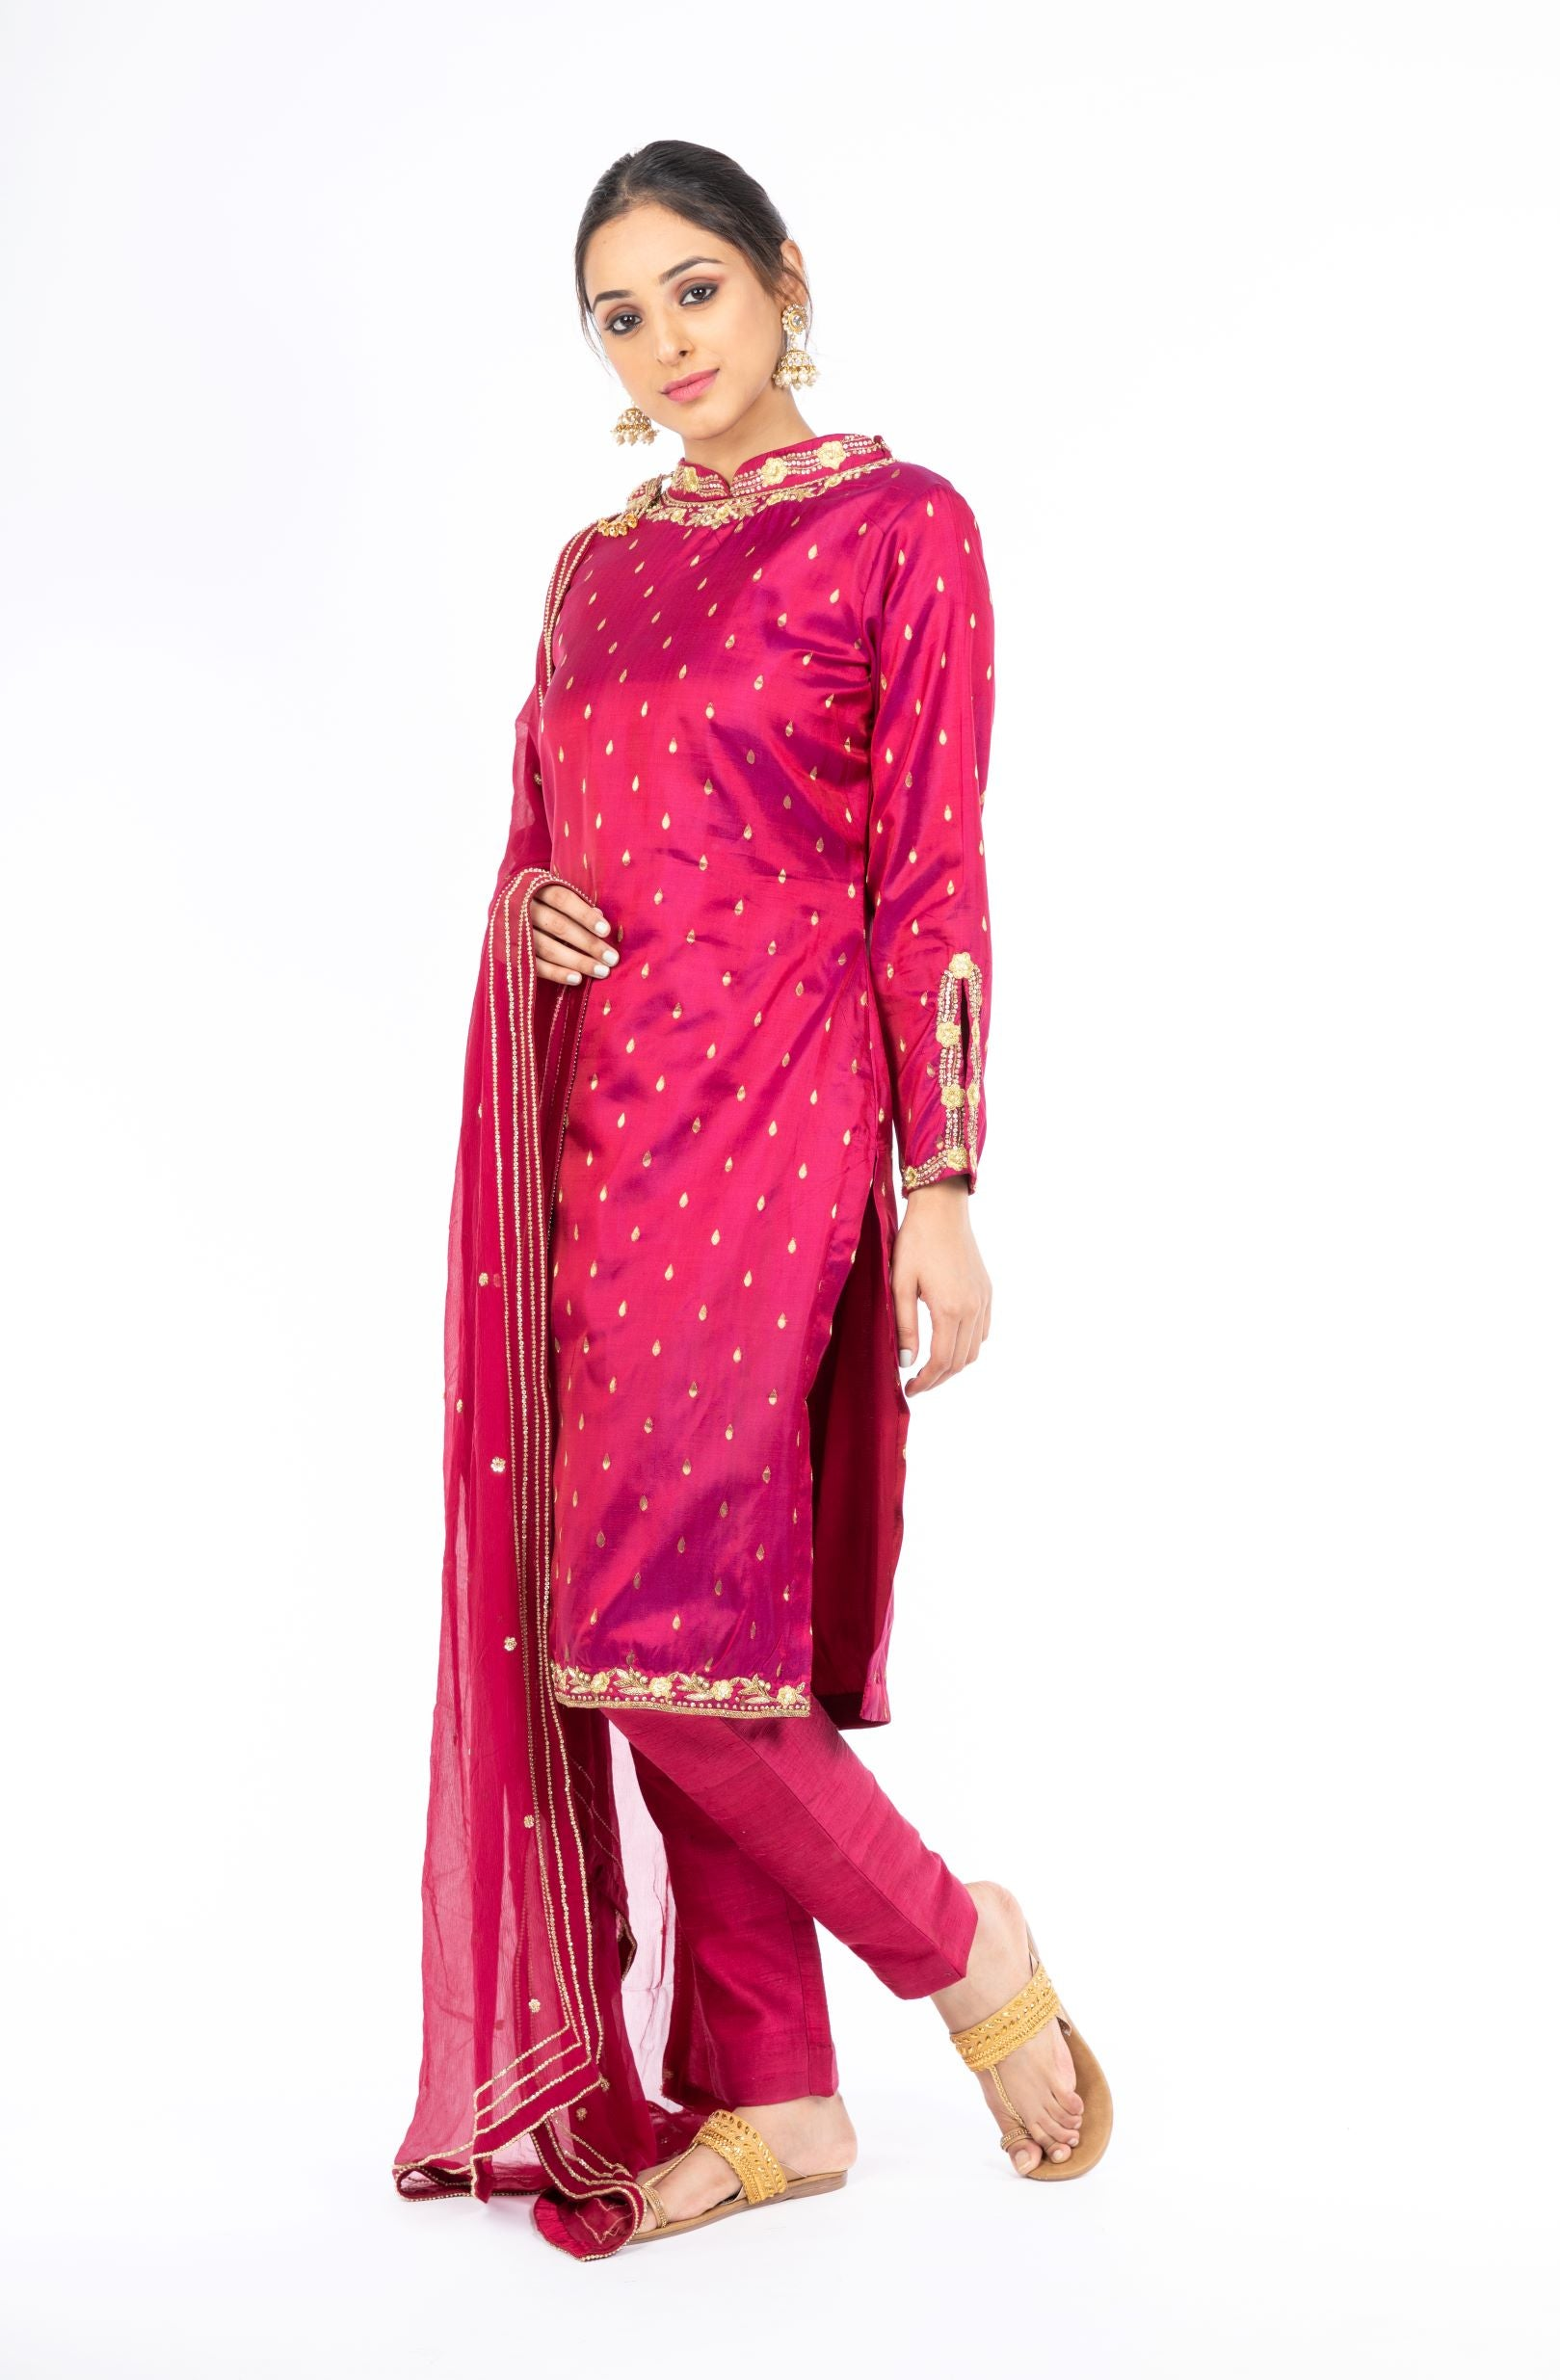 Adorable Pomegranate Red Pure Silk Salwar Kameez